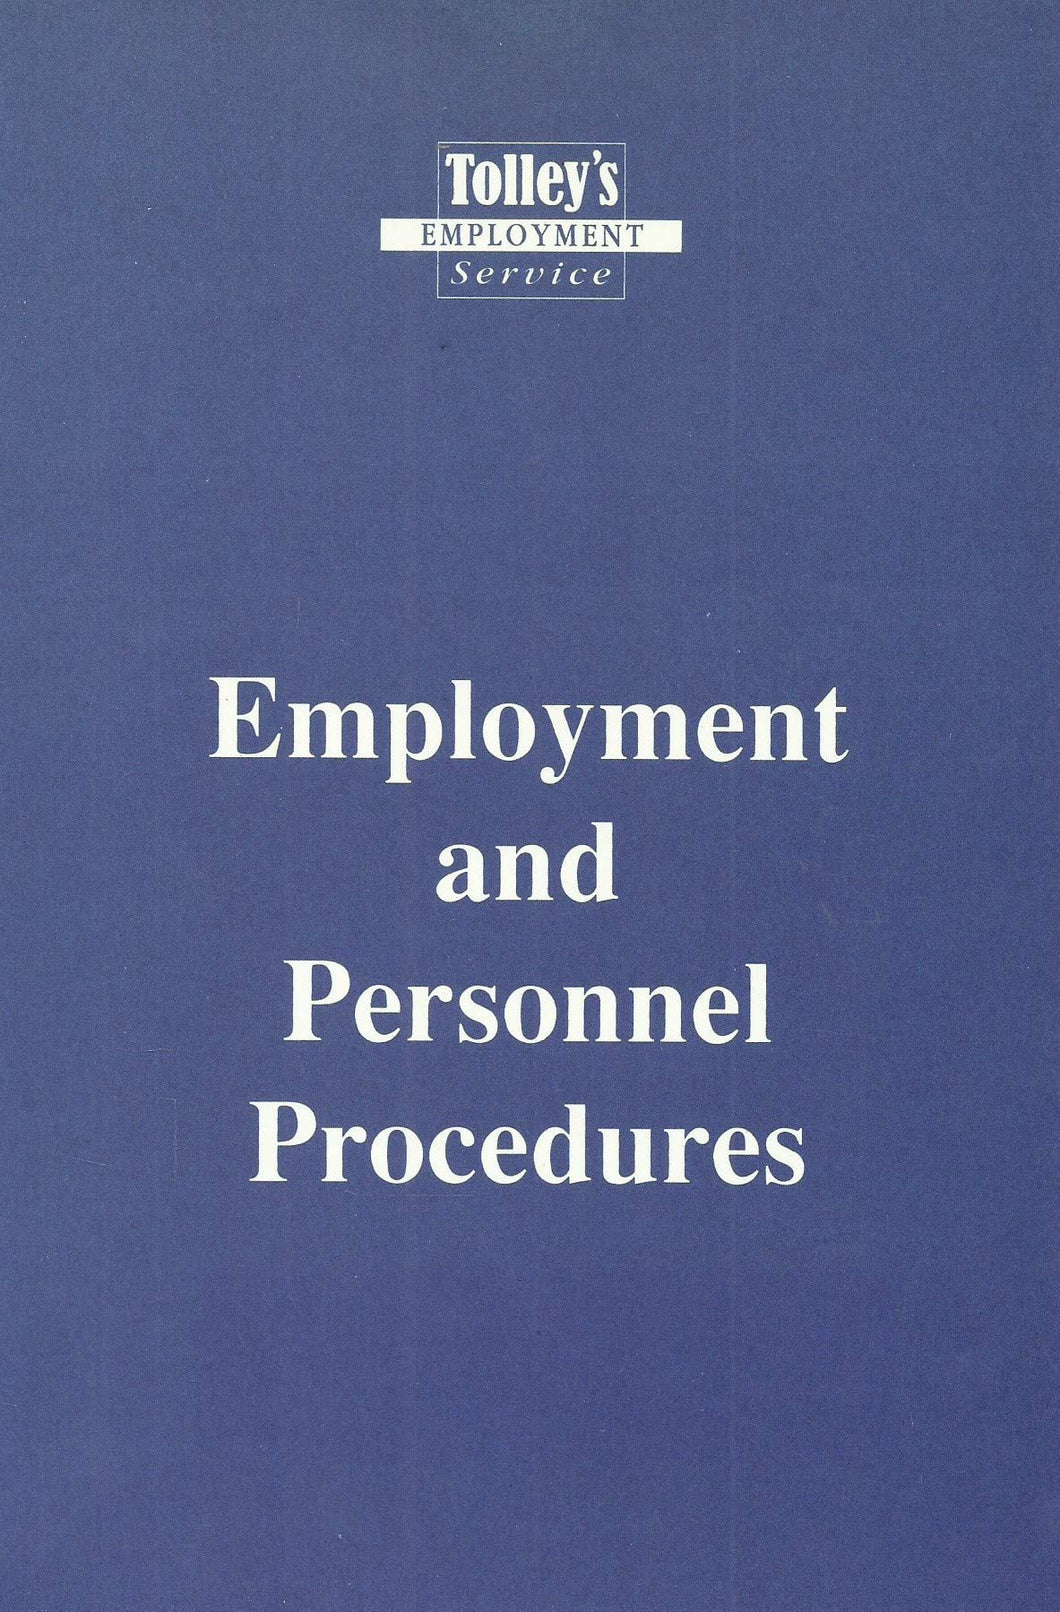 Tolley's Employment and Personnel Procedures